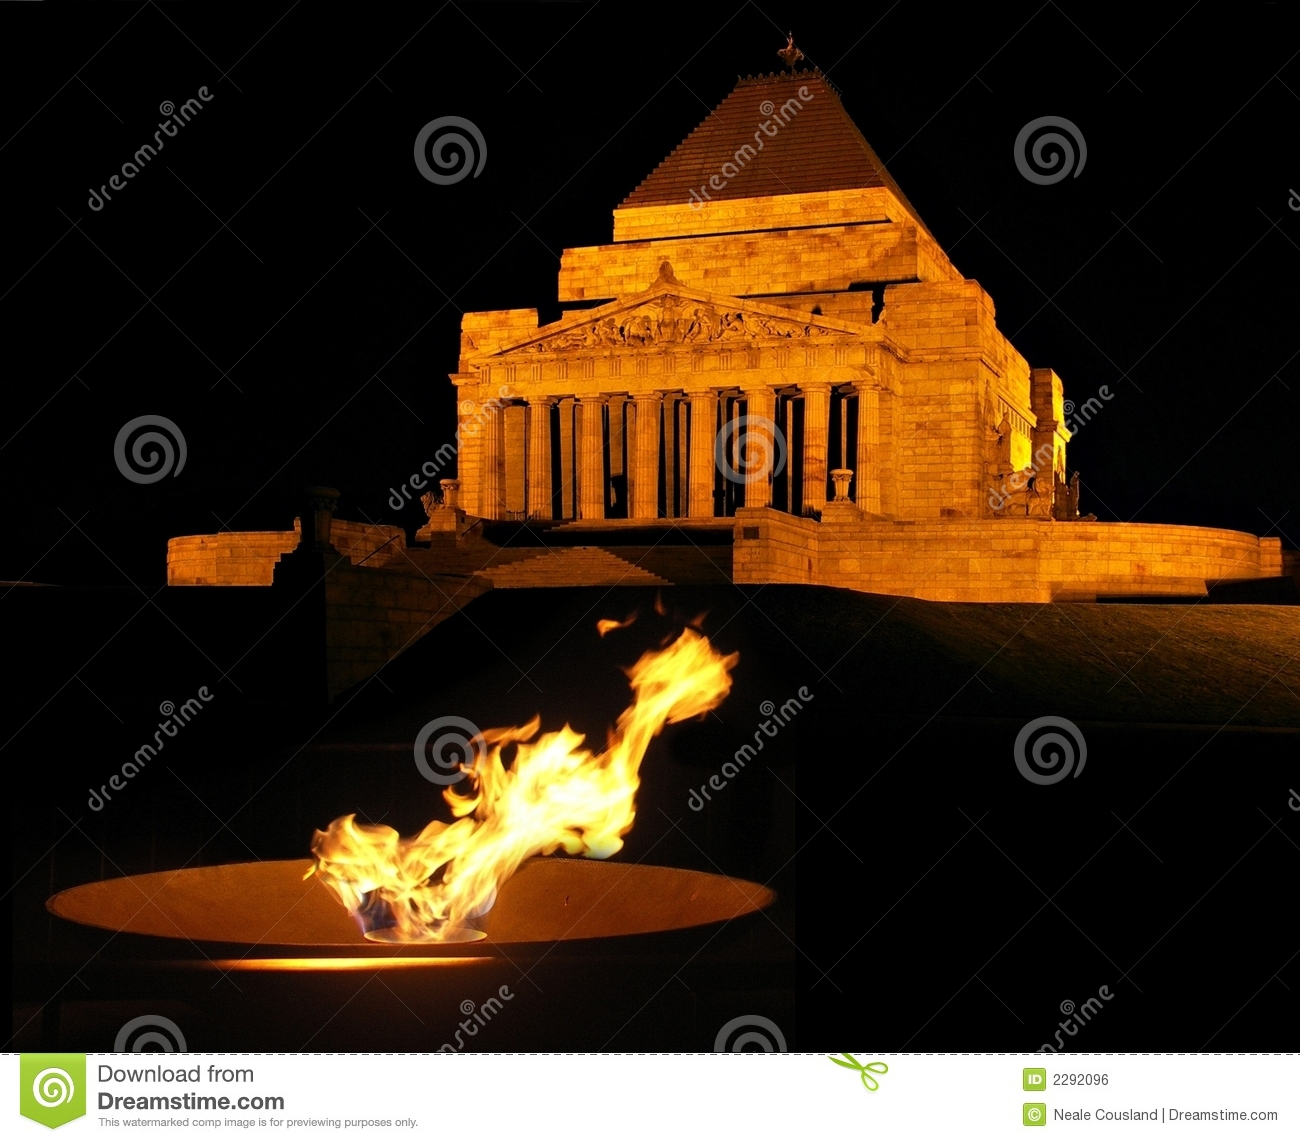 Eternal Flame at the Shrine